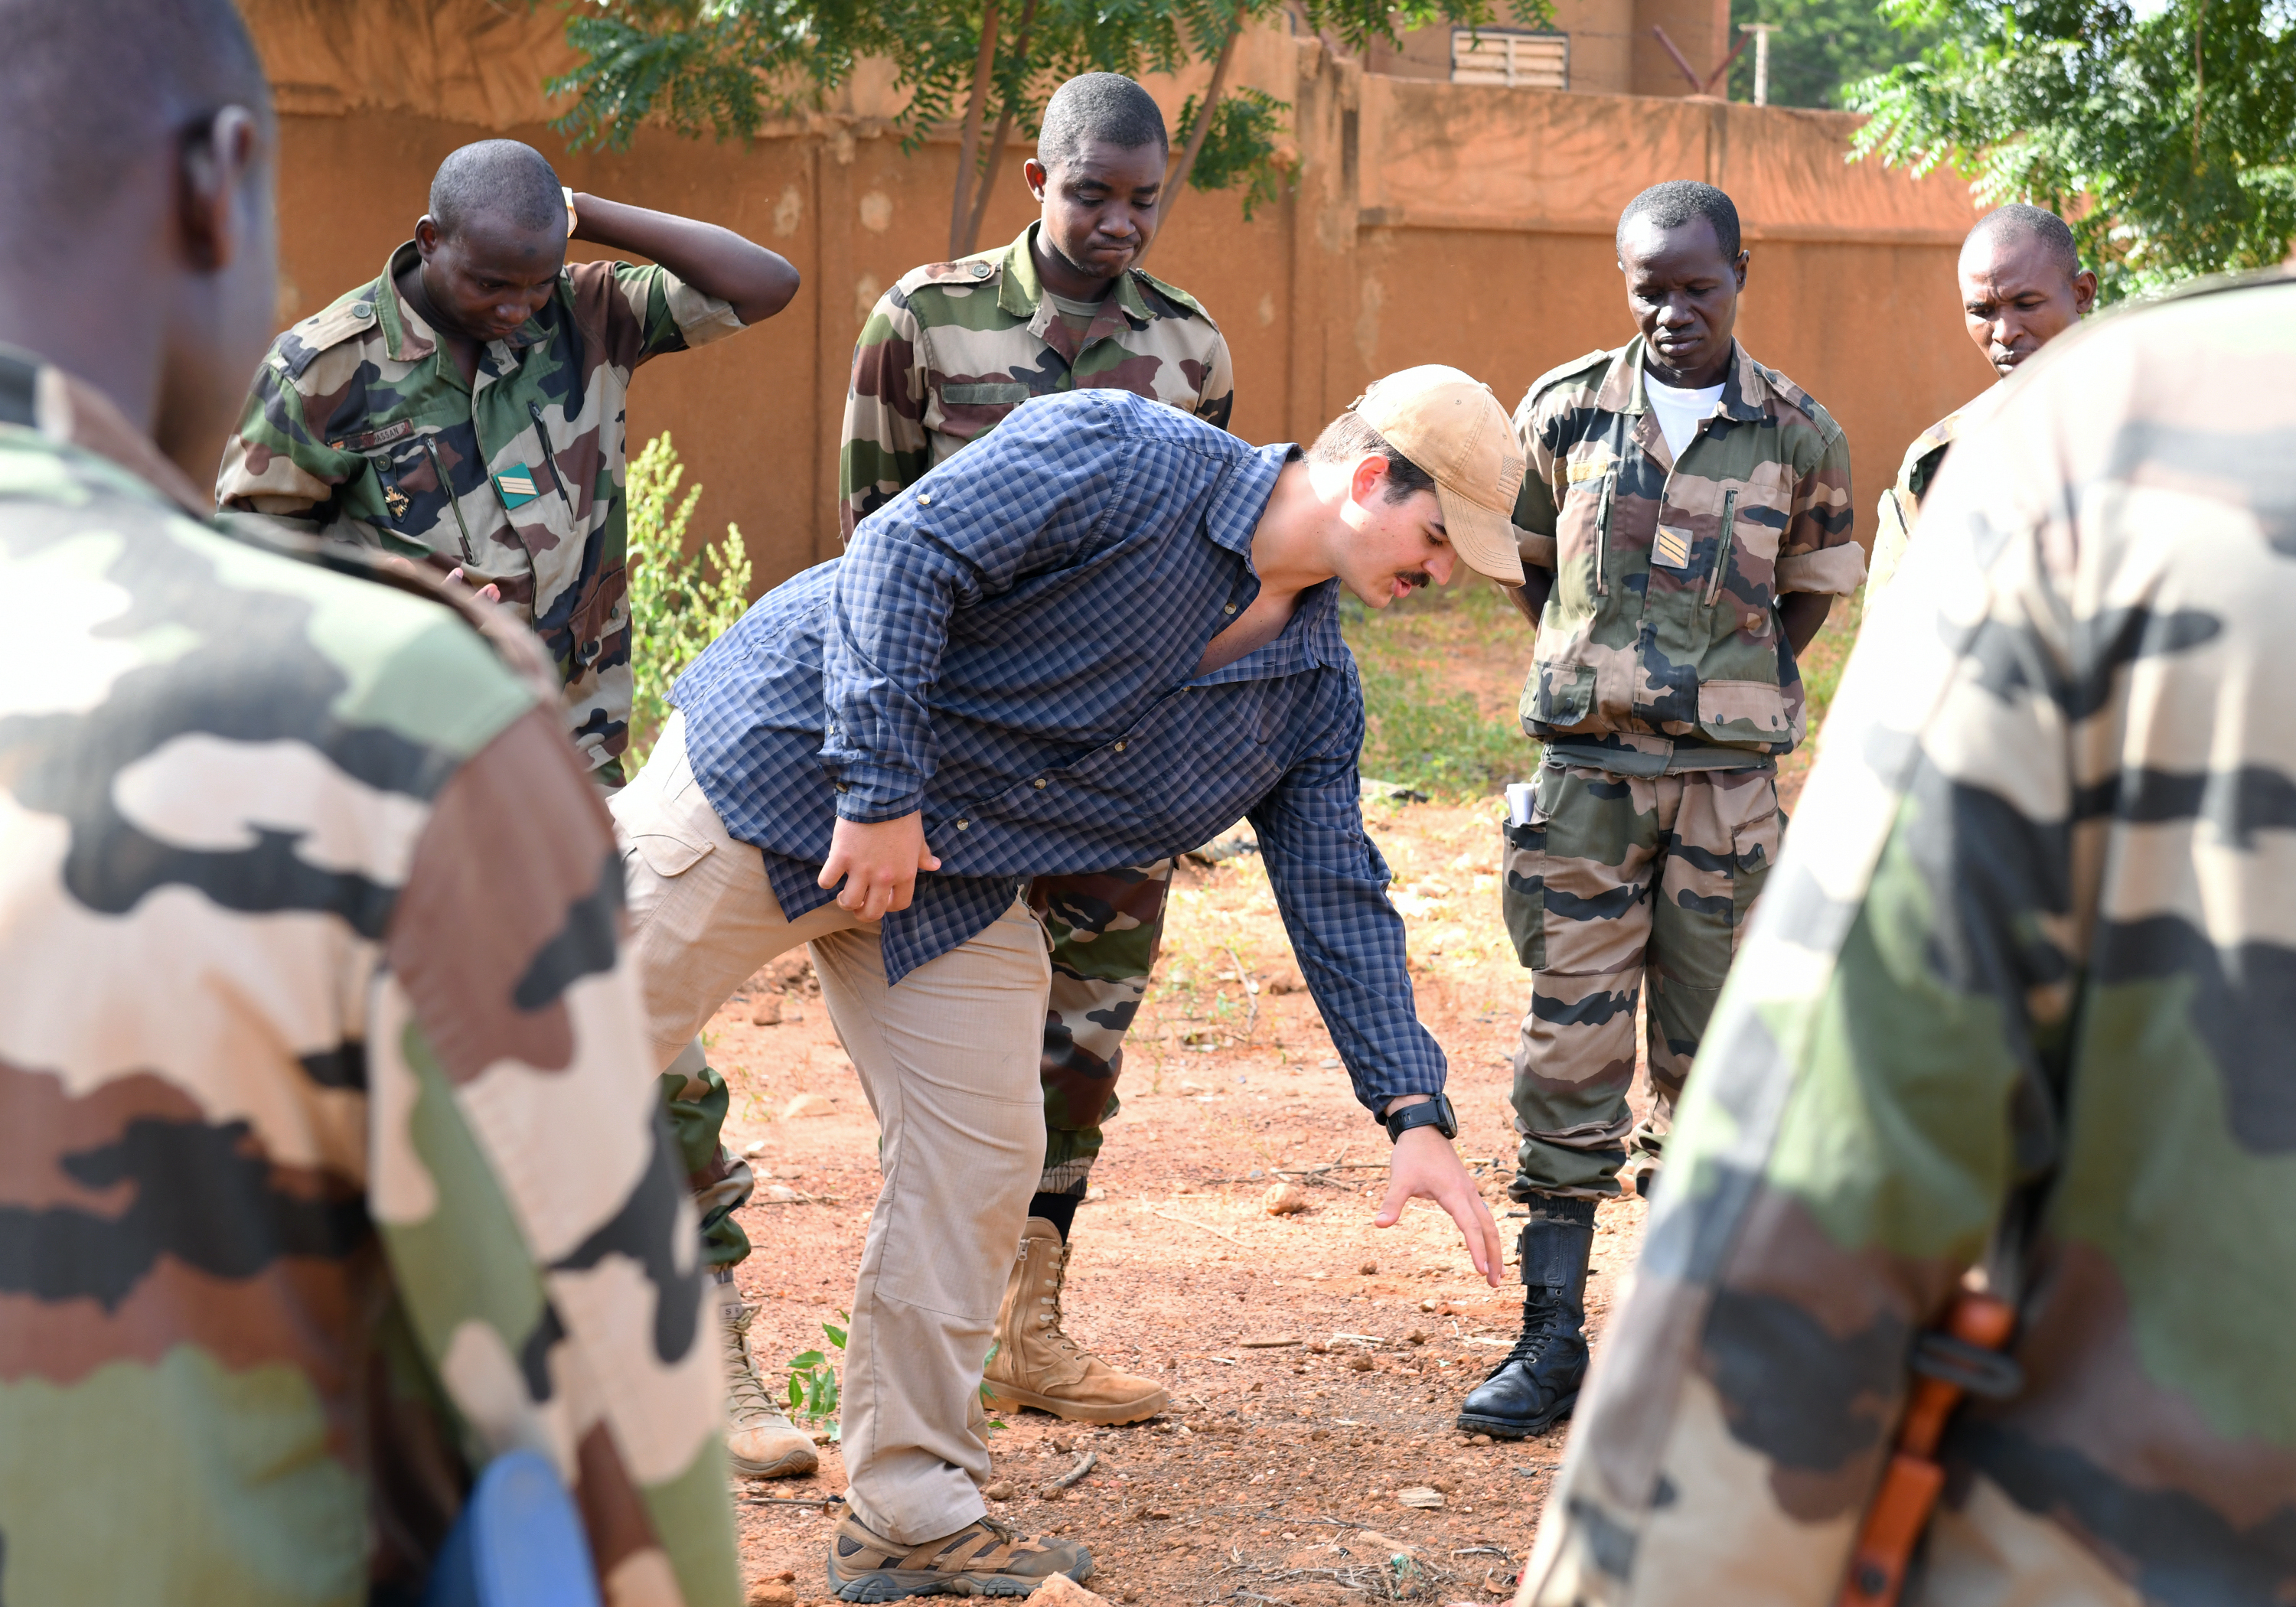 U.S. Air Force Senior Airman Caleb Love, 768th Expeditionary Air Base Squadron Explosive Ordnance Disposal team member, shows members of the Forces Armées Nigeriennes (Nigerien Armed Forces) Genie Unit disturbed earth, a common sign indicating improvised explosive devices, during an IED Awareness Course in Niamey, Niger, Oct. 11, 2019. During this week-long course, the FAN learned how to locate and react to an IED, how to set up a cordon and the procedures to clear the area. (U.S. Air Force photo by Staff Sgt. Alex Fox Echols III)